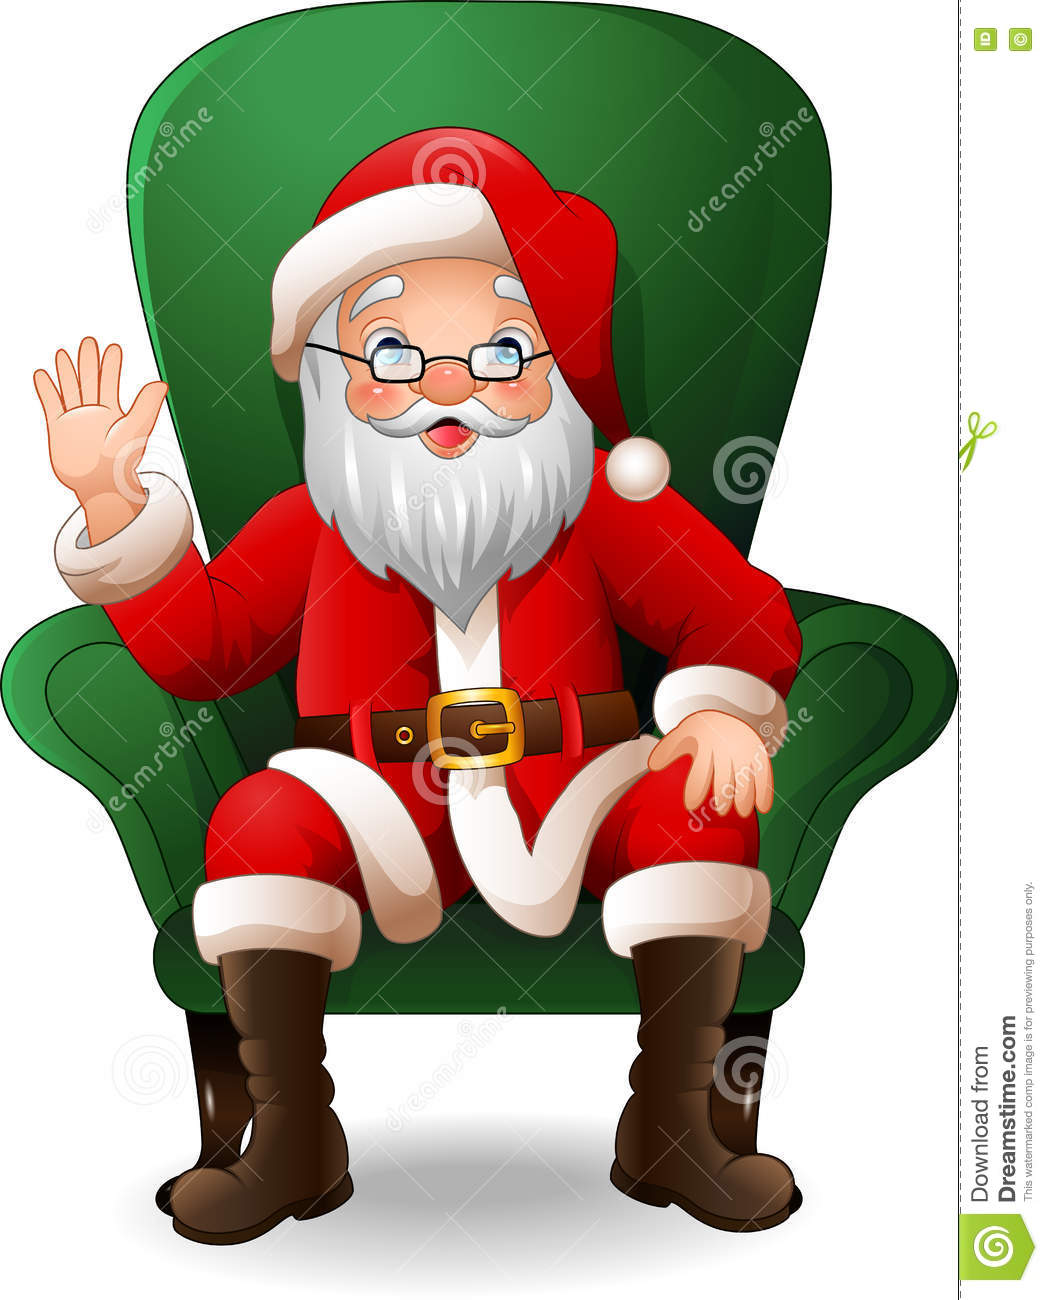 Cartoon Santa Claus Sitting On Green Arm Chair Stock